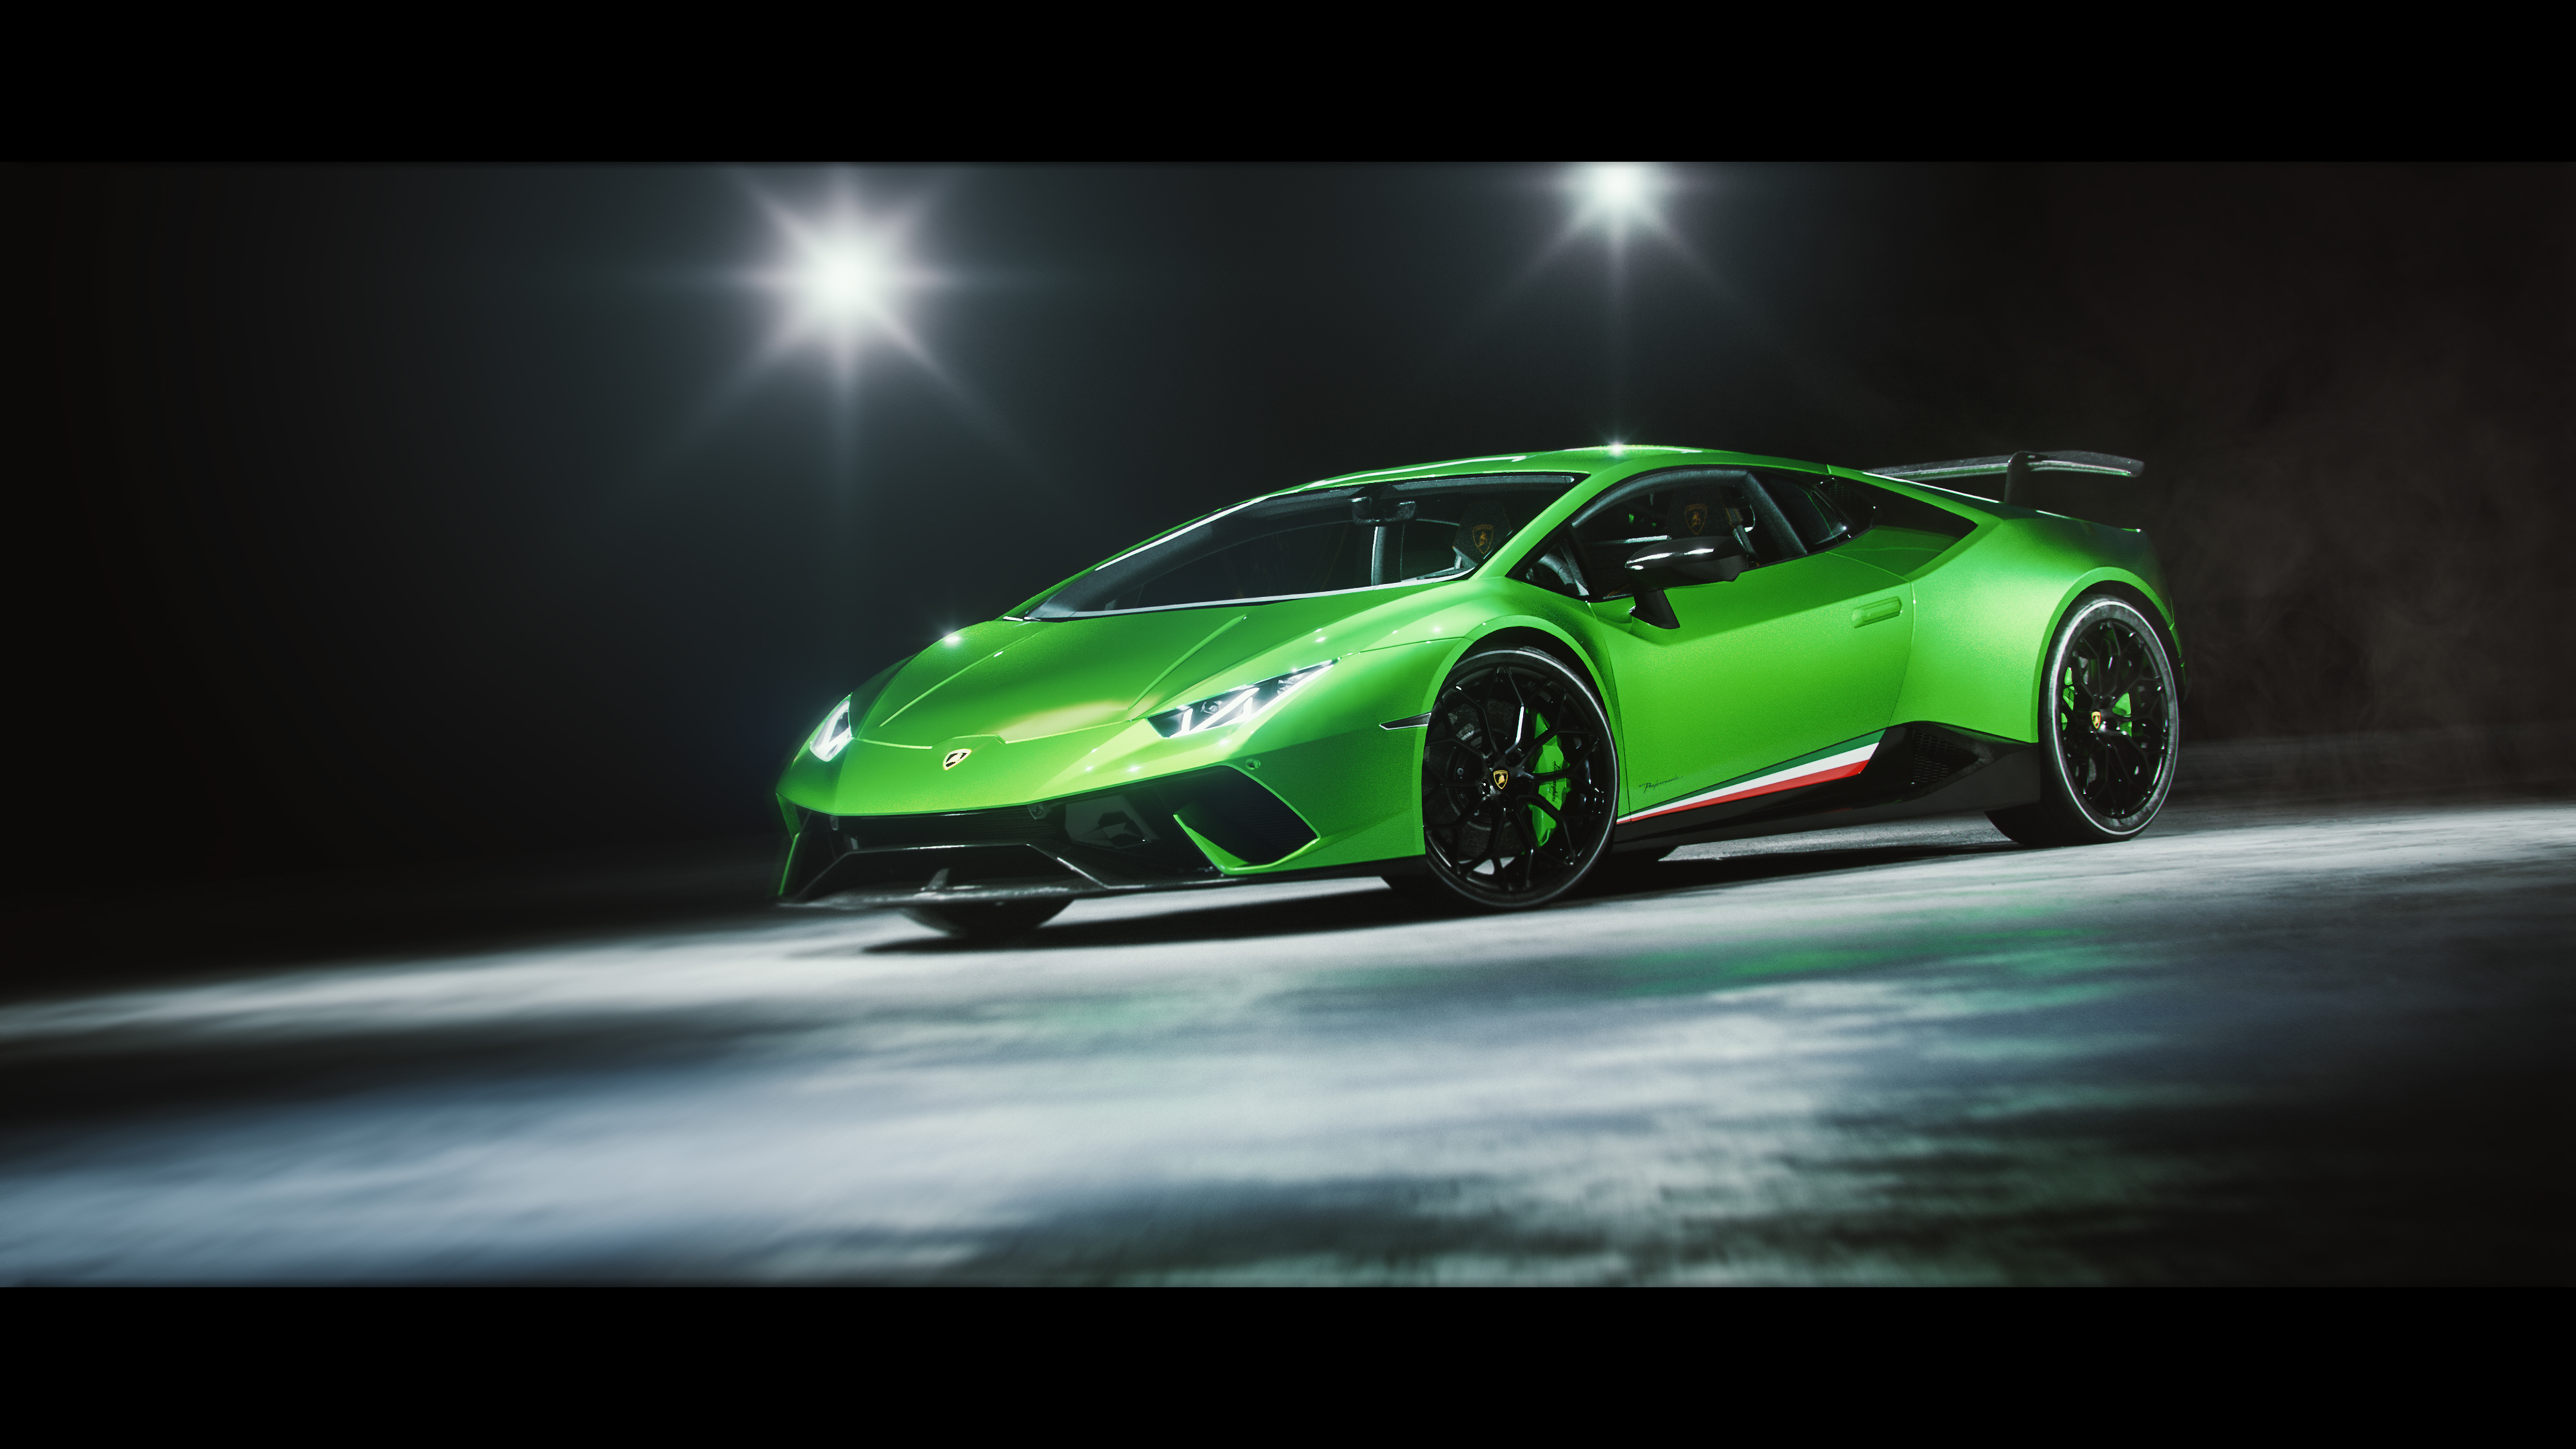 Lamborghini Huracan Performante 4K Wallpaper